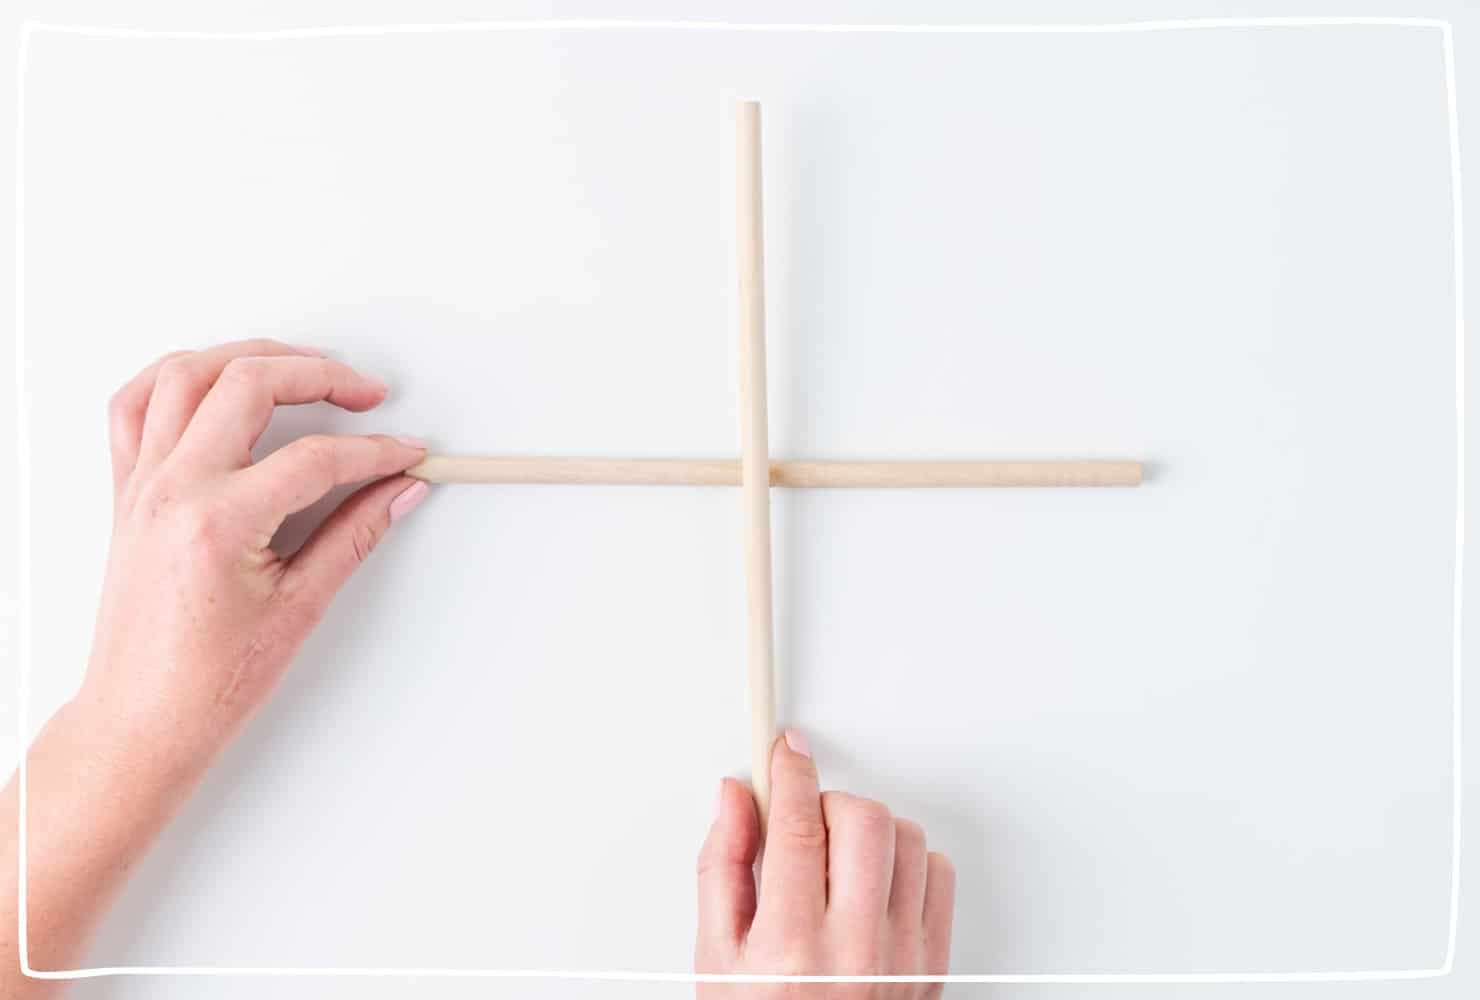 Step 7: Glue your dowels together at the center in the shape of a cross.